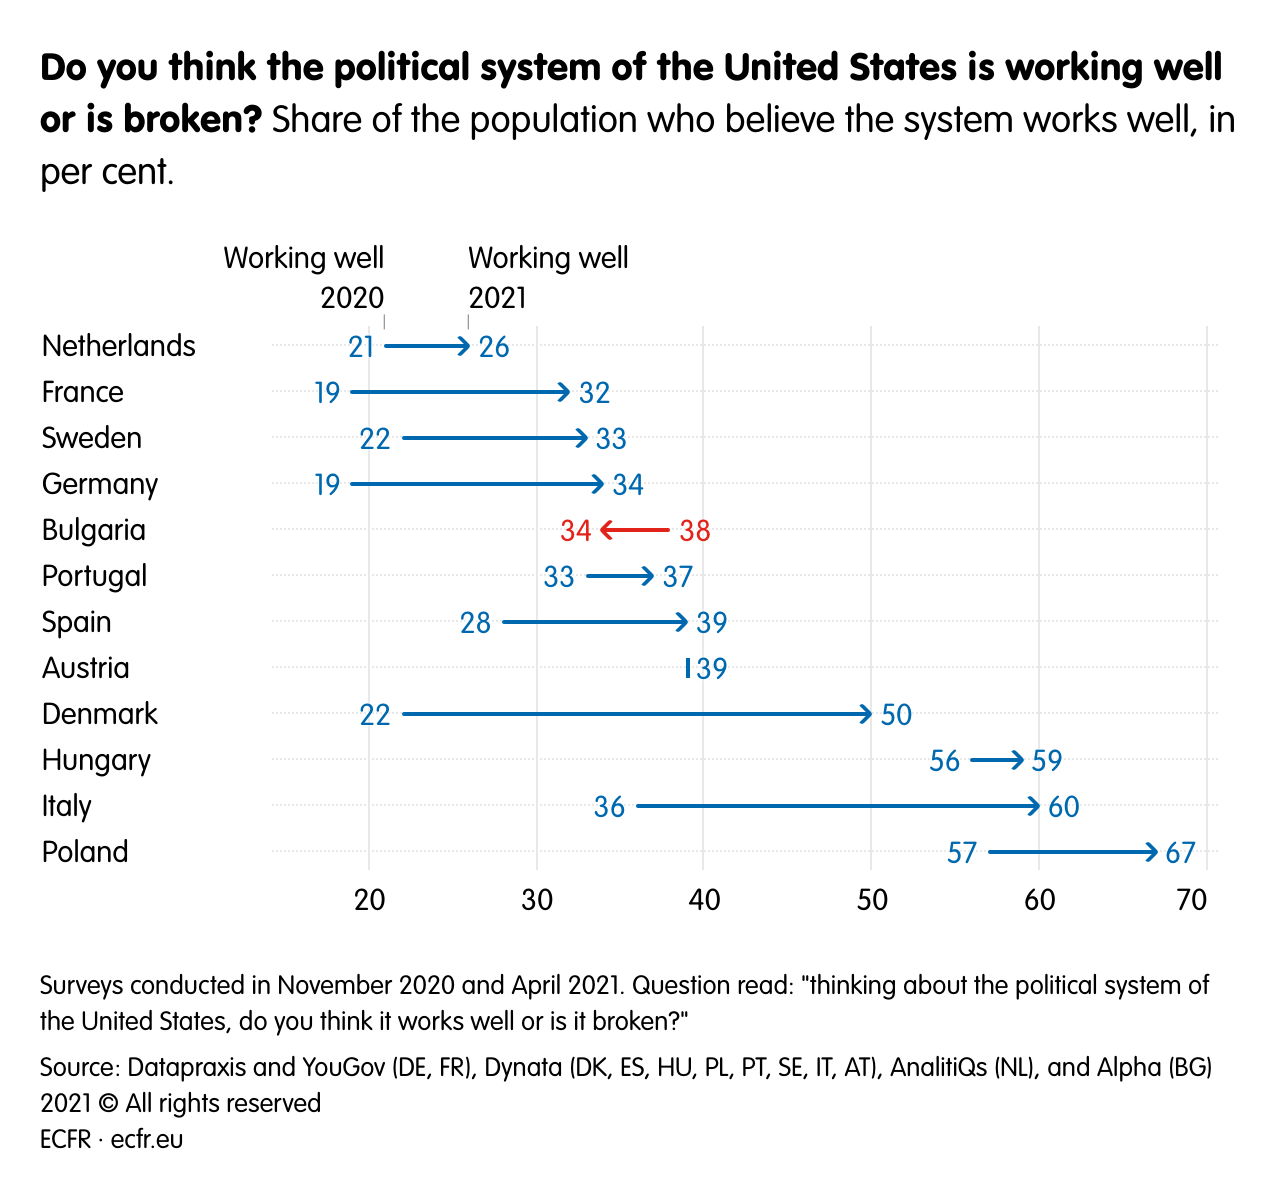 Do you think the political system of the United States is working well or is broken?